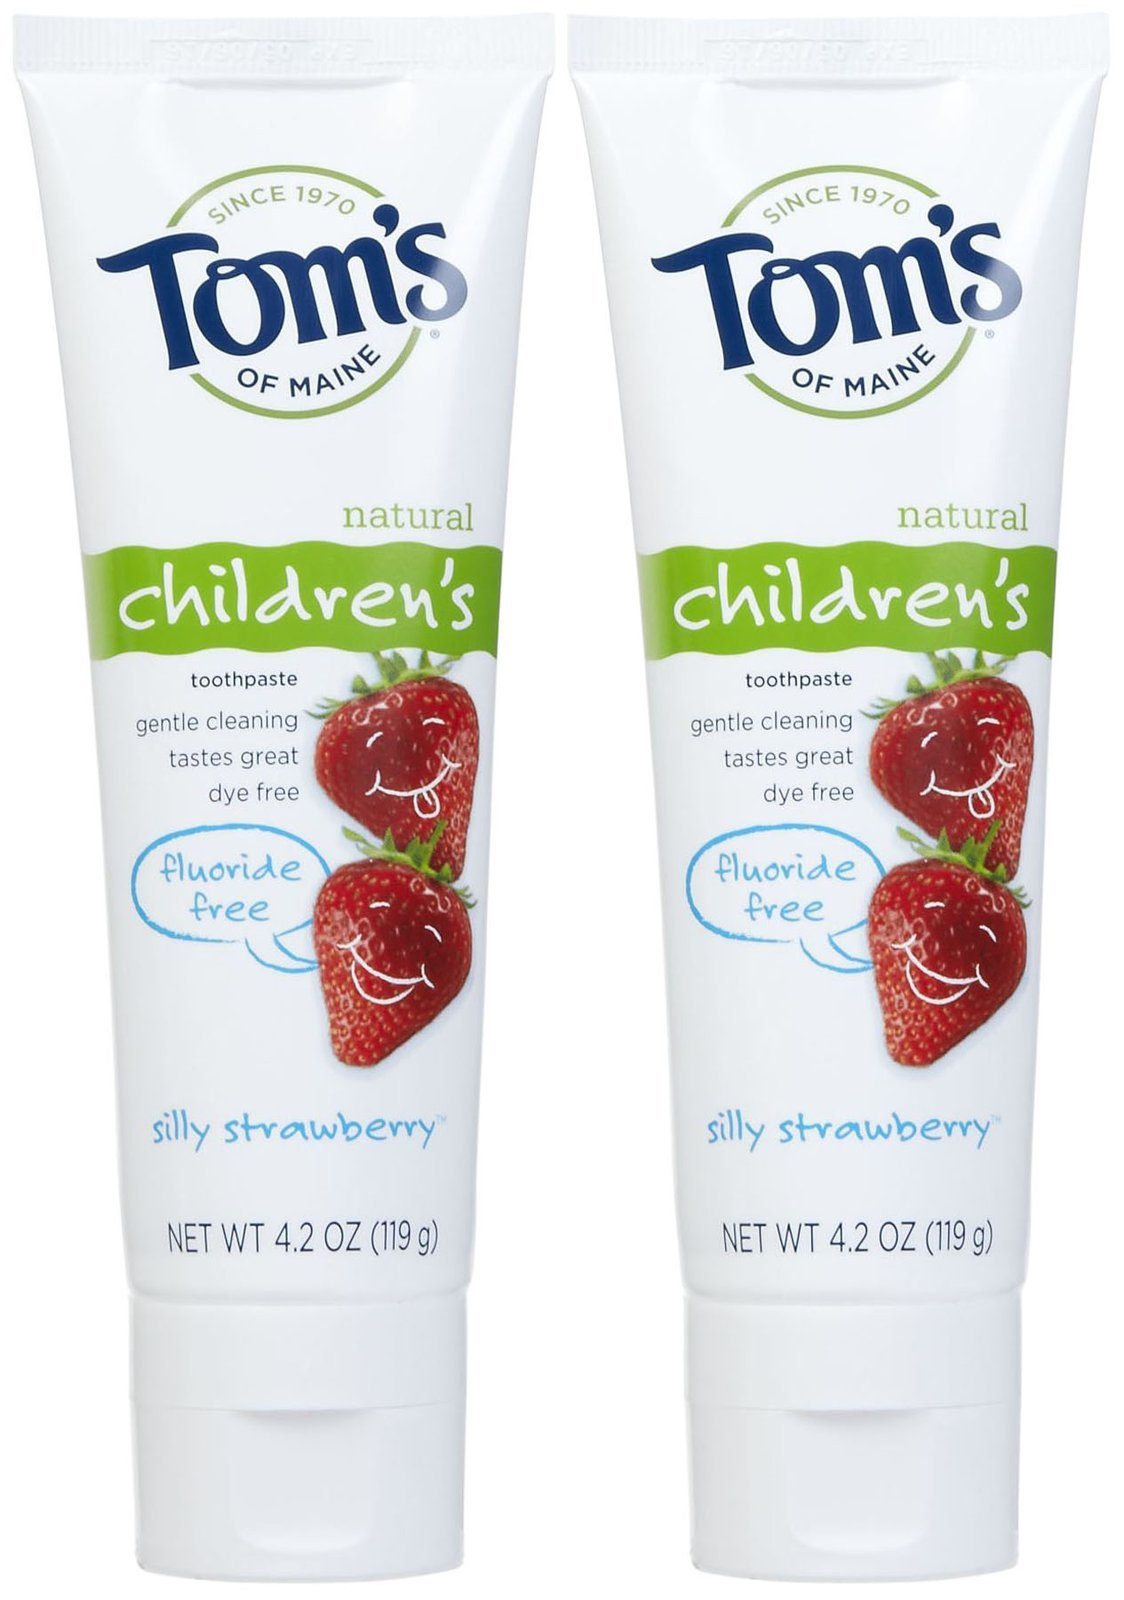 Tom's of Maine Fluoride Free Children's Toothpaste, Silly Strawberry - 4.2 oz - 2 pk